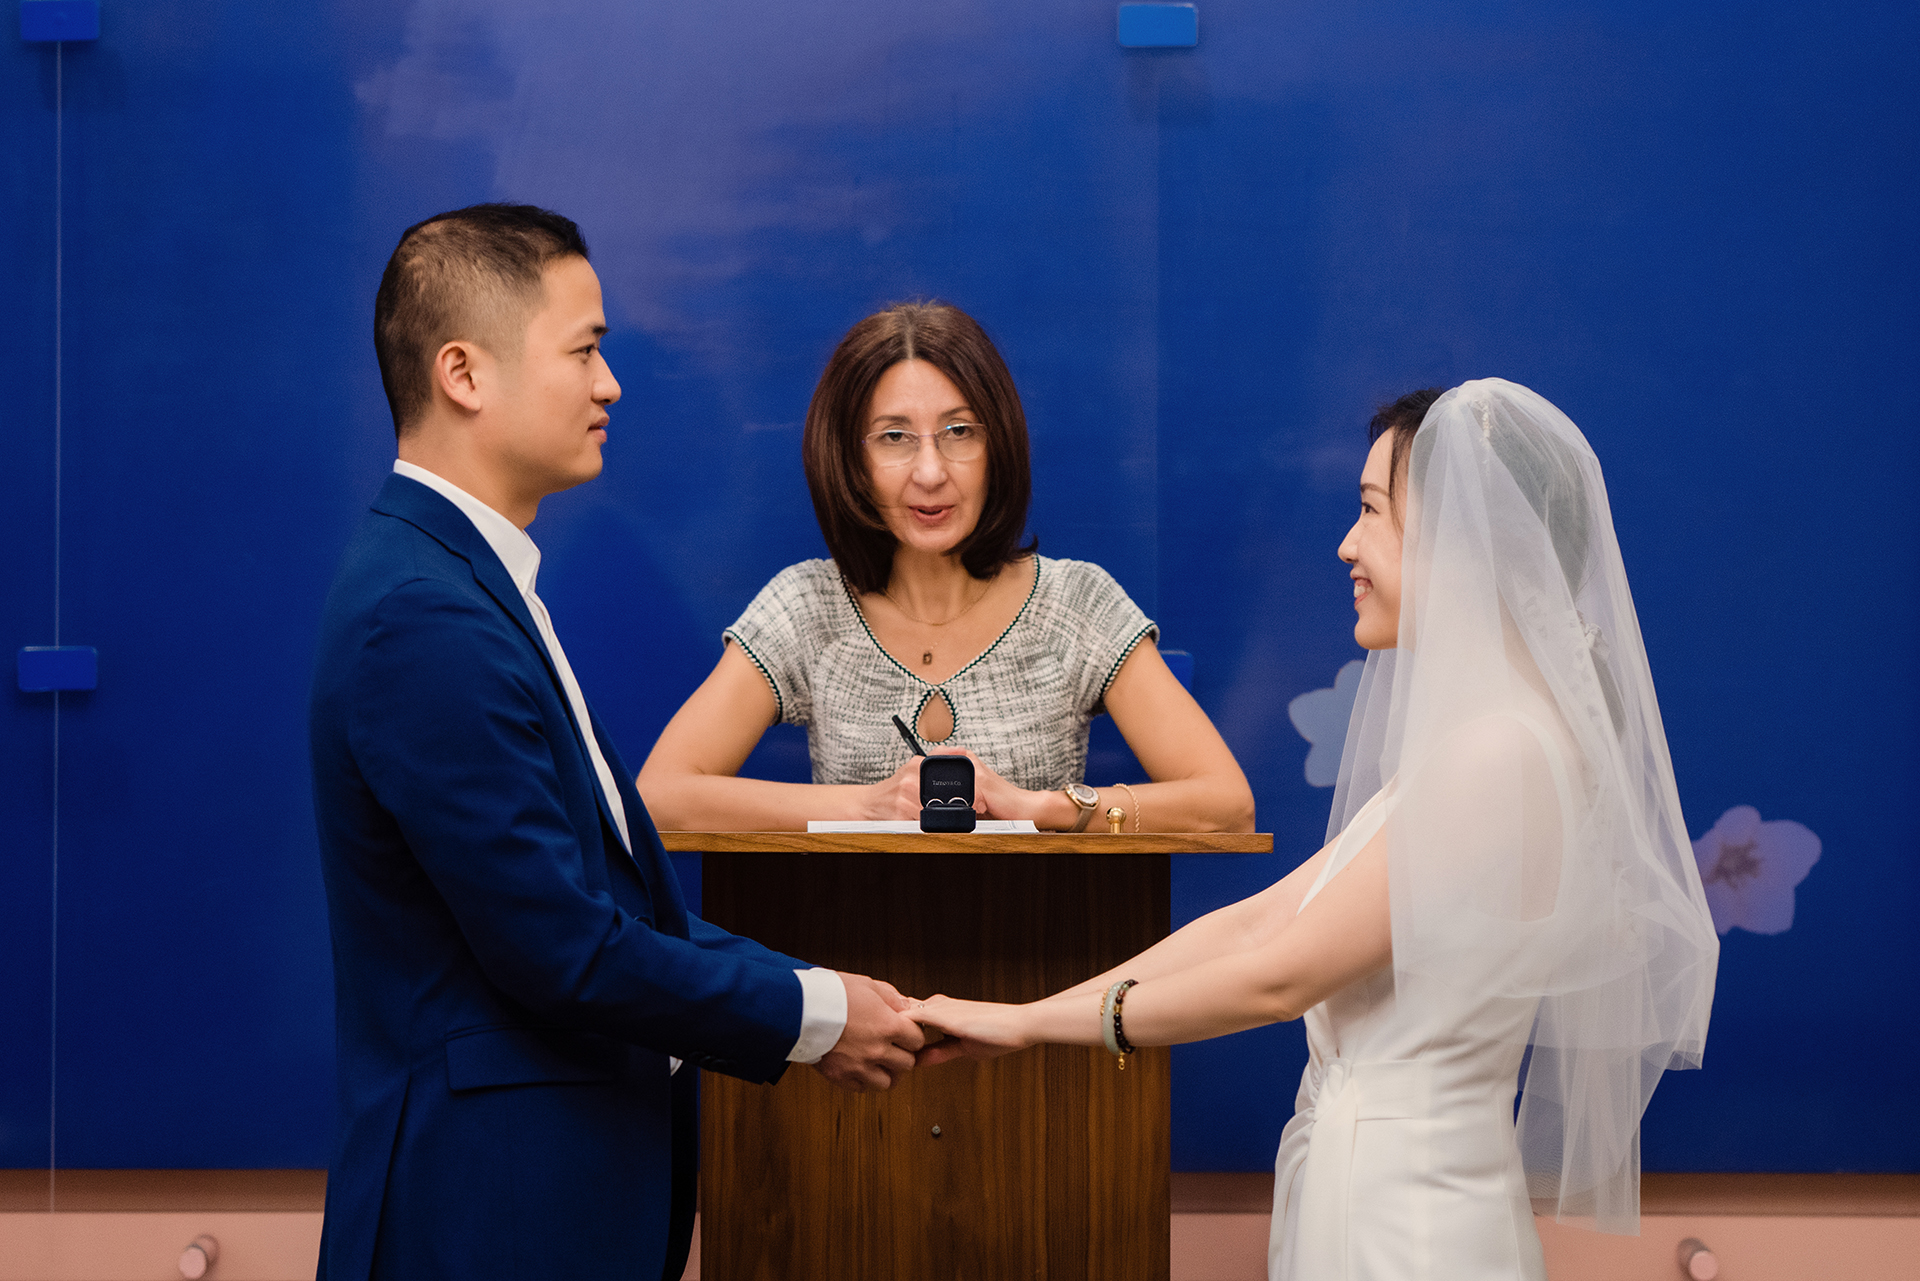 New York City - Clerk Elopement Ceremony Photography |